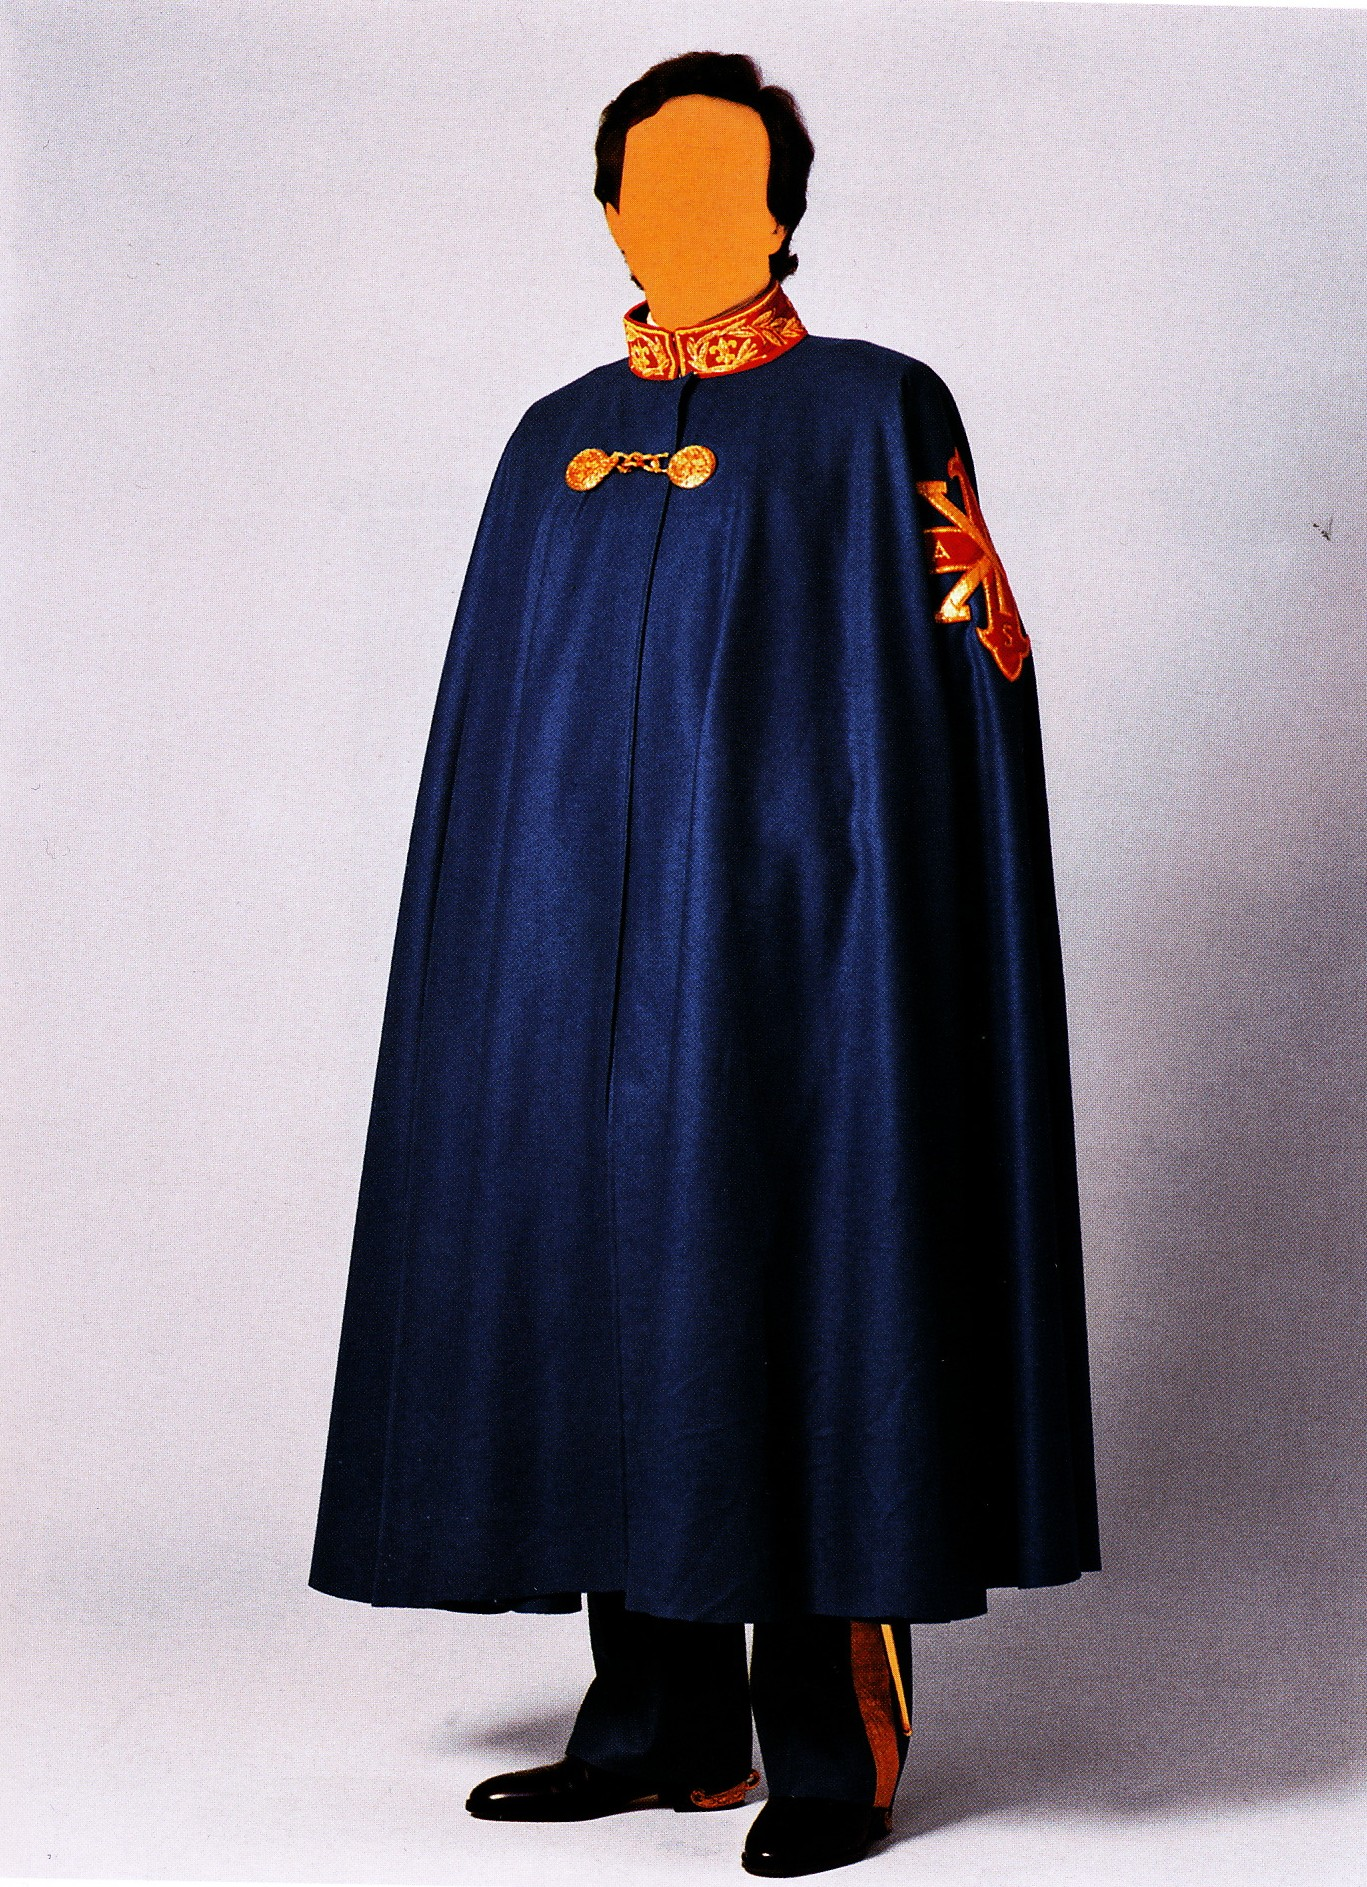 Mantle Cape of the Order